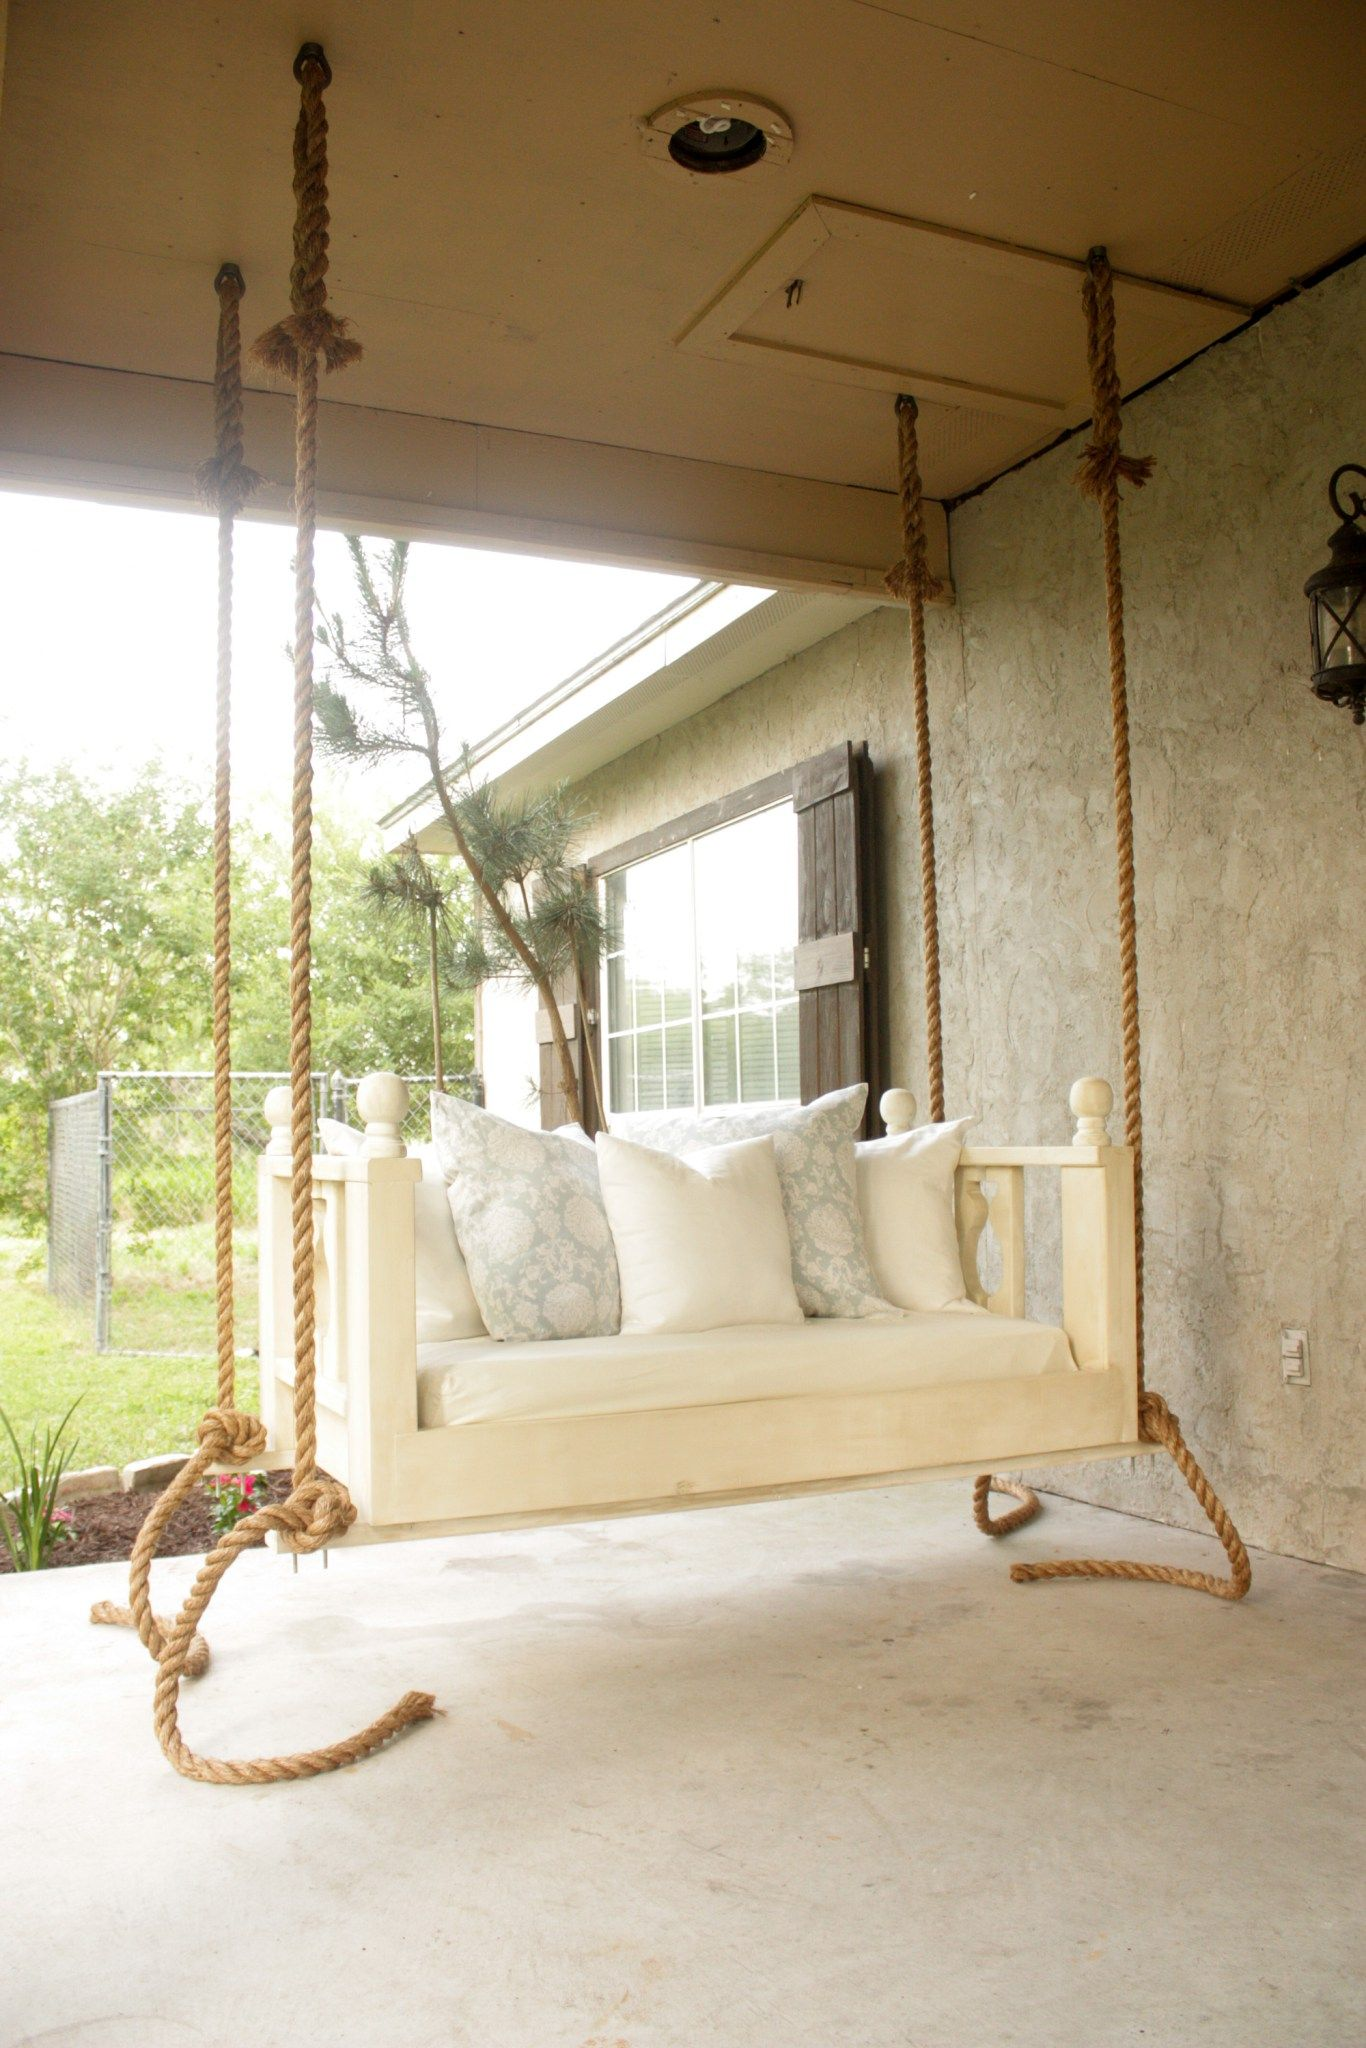 Diy Porch Bed Swing Porch Swing Bed Diy Porch Swing Bed Porch Bed